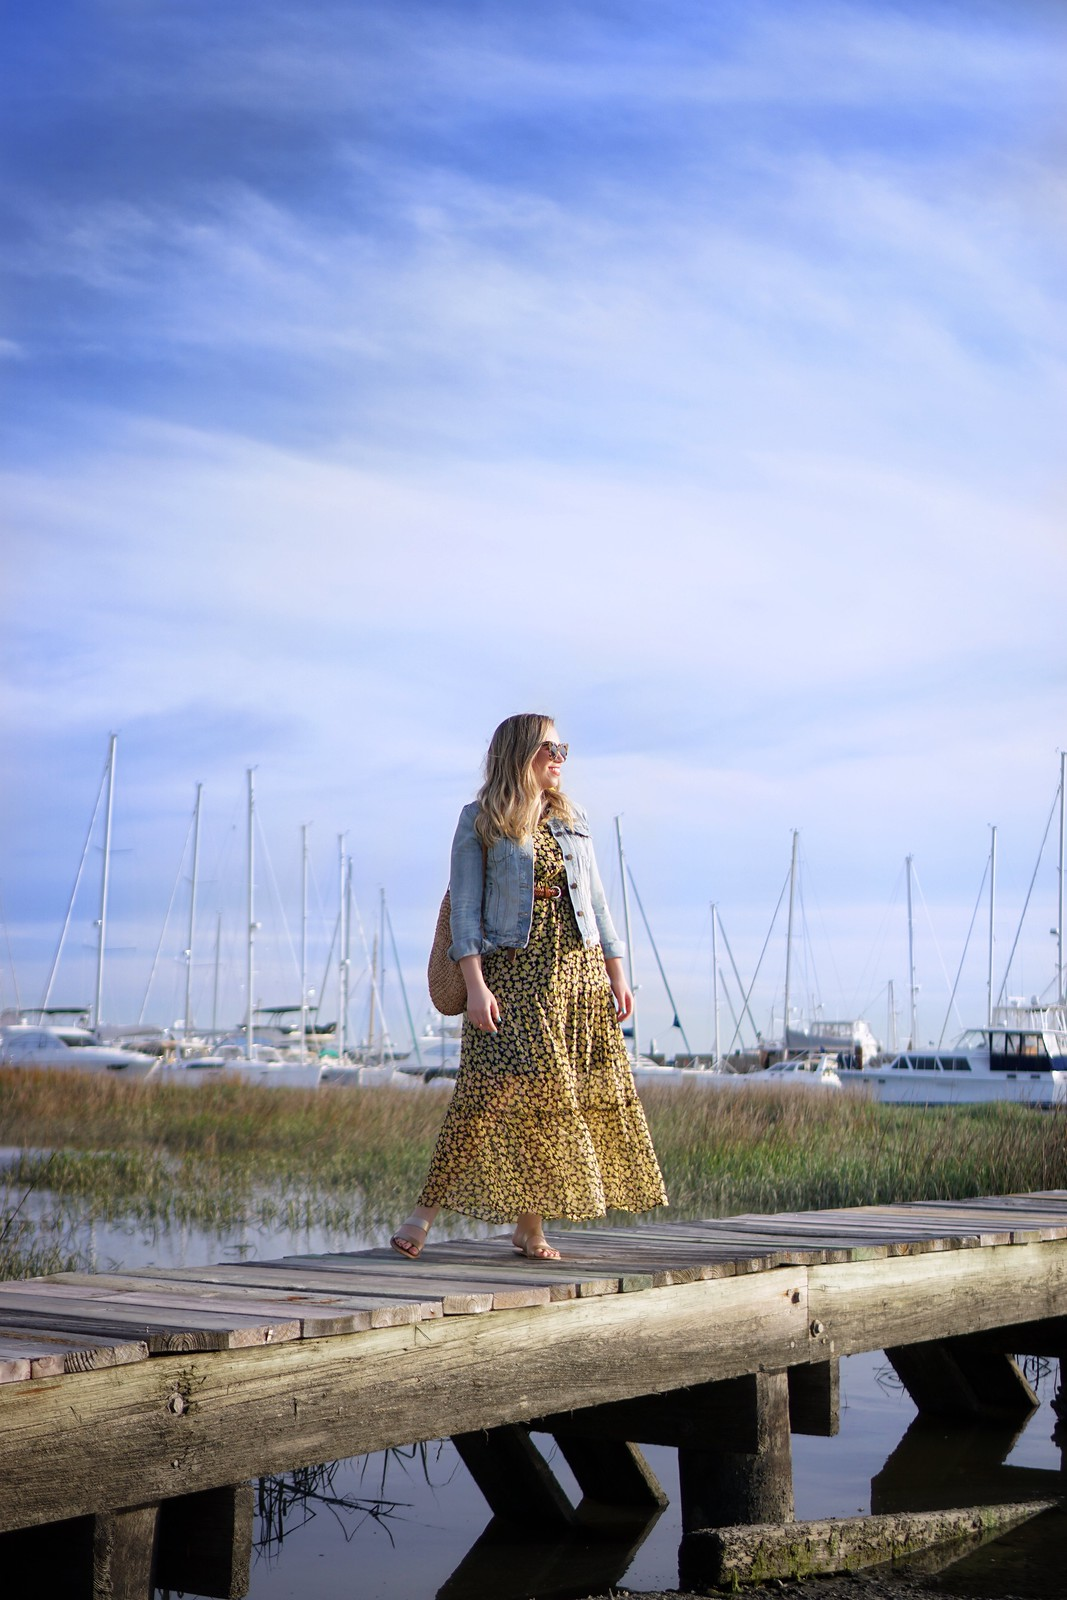 Who What Wear Yellow Floral Maxi Dress | What to Wear in Charleston in the Spring | Charleston Packing List | Spring in Charleston | Best Outfits to Wear in Charleston | What I Packed for Charleston